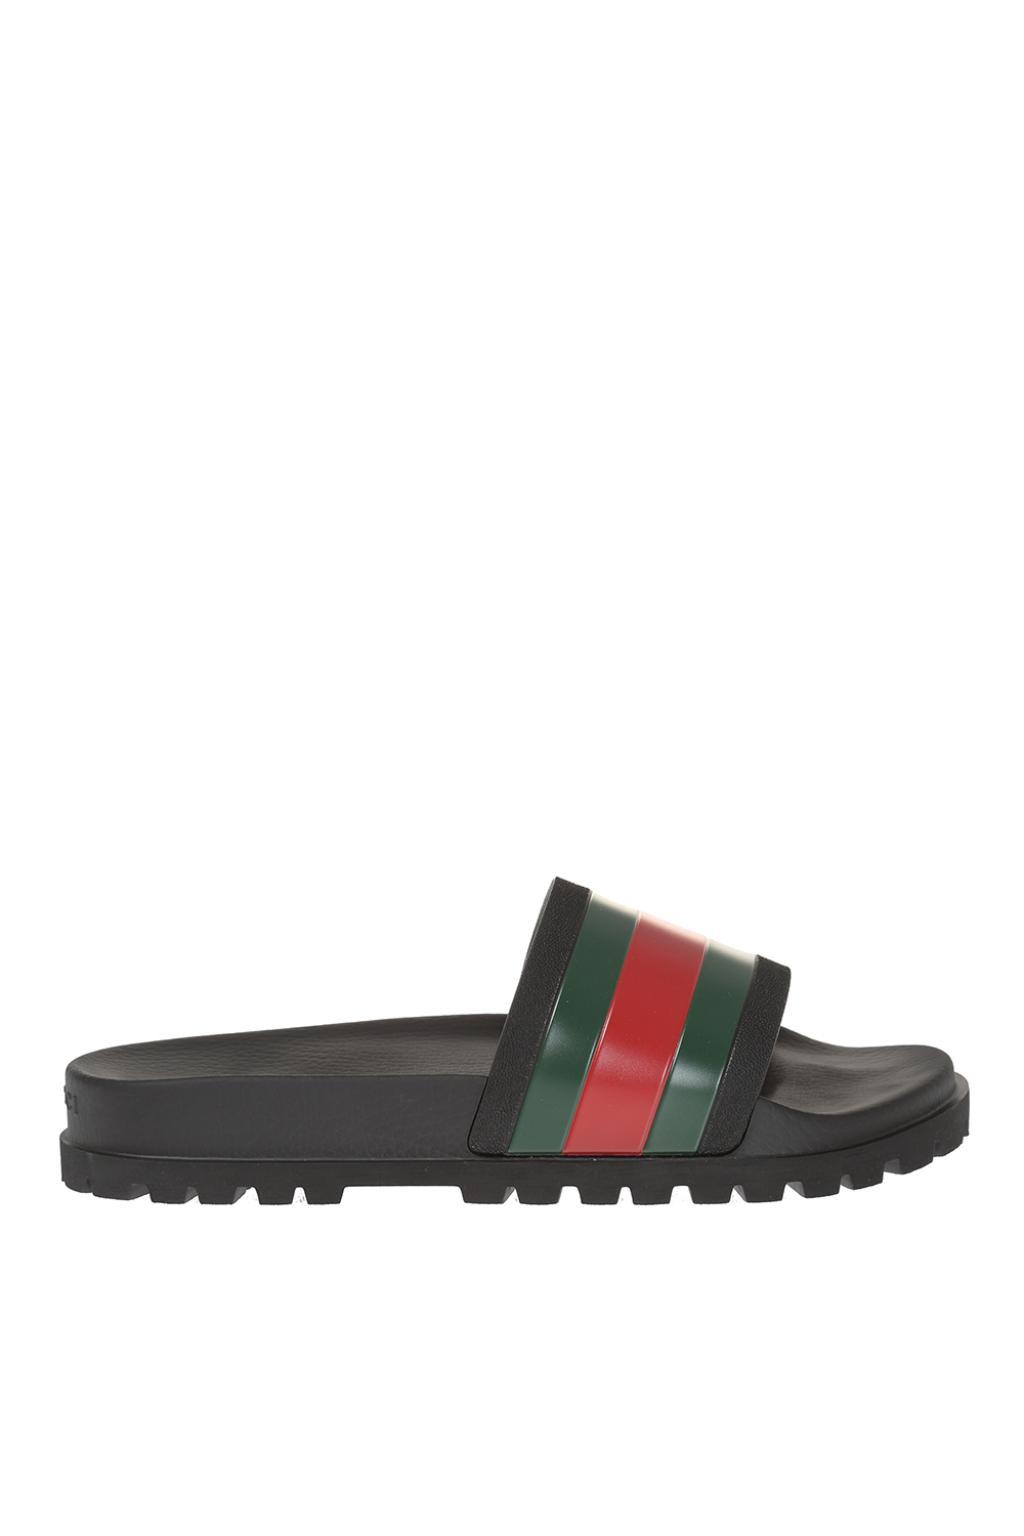 4802709aab78 Lyst - Gucci Striped Web Rubber Slides in Black for Men - Save 30%